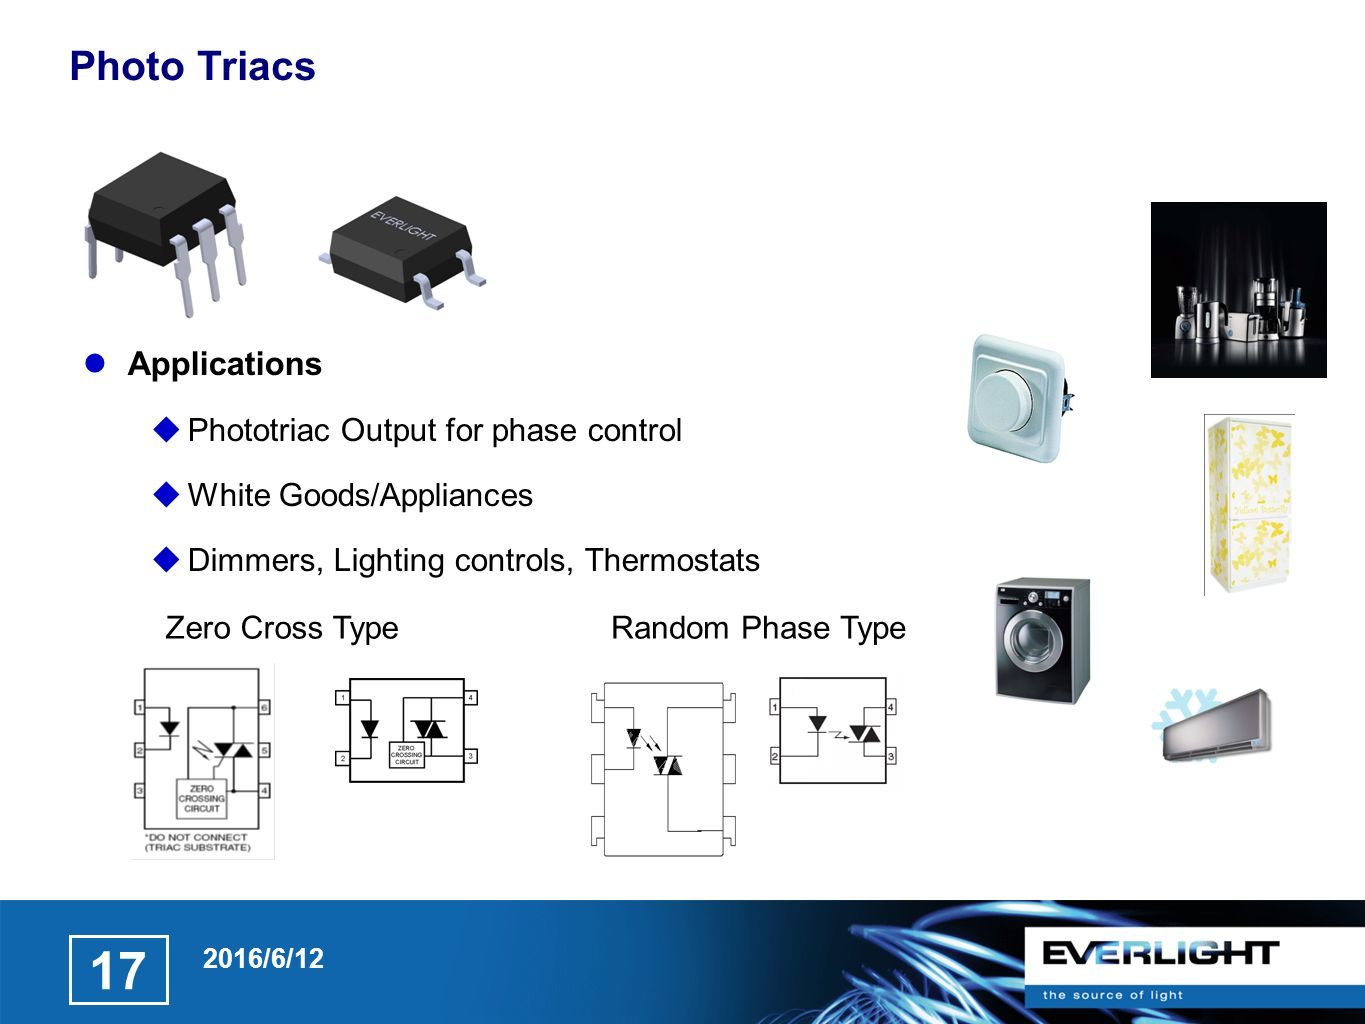 Photo Coupler Ppt Video Online Download Zero Cross Circuit A Or Crossing Is An 17 Triacs Applications Phototriac Output For Phase Control White Goods Appliances Dimmers Lighting Controls Thermostats